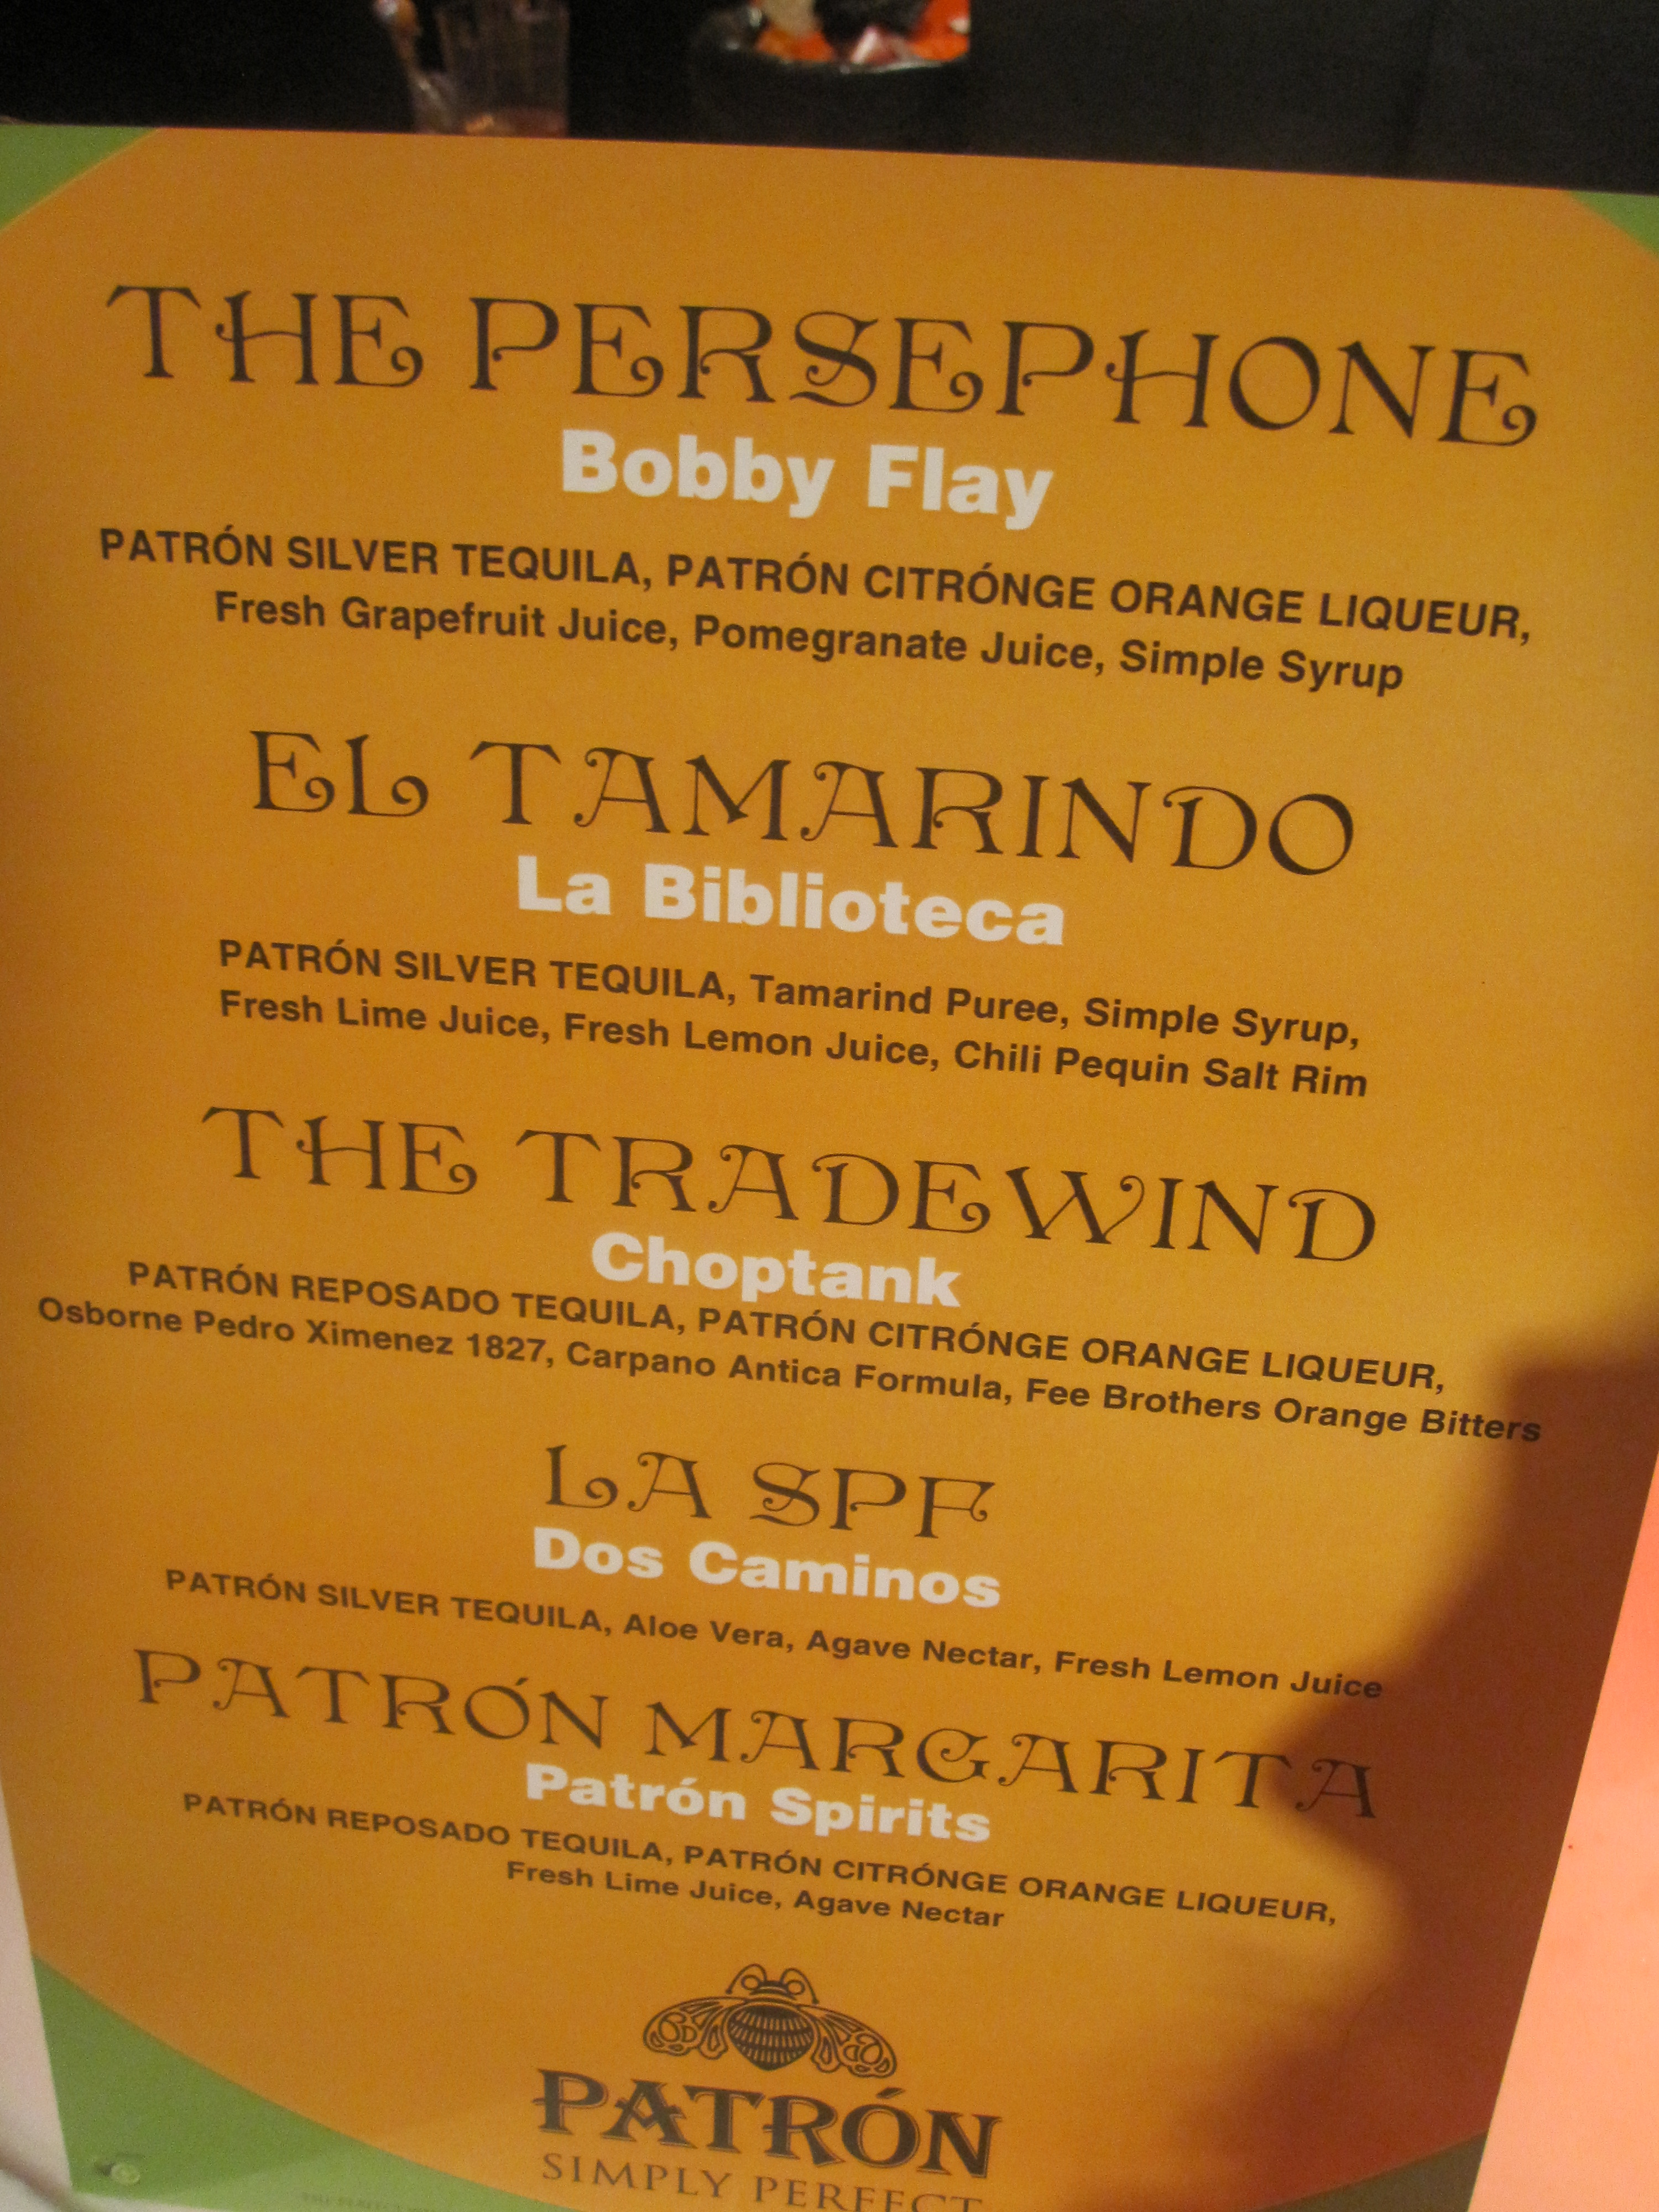 The cocktail list. I enjoyed a classic margarita (or two).